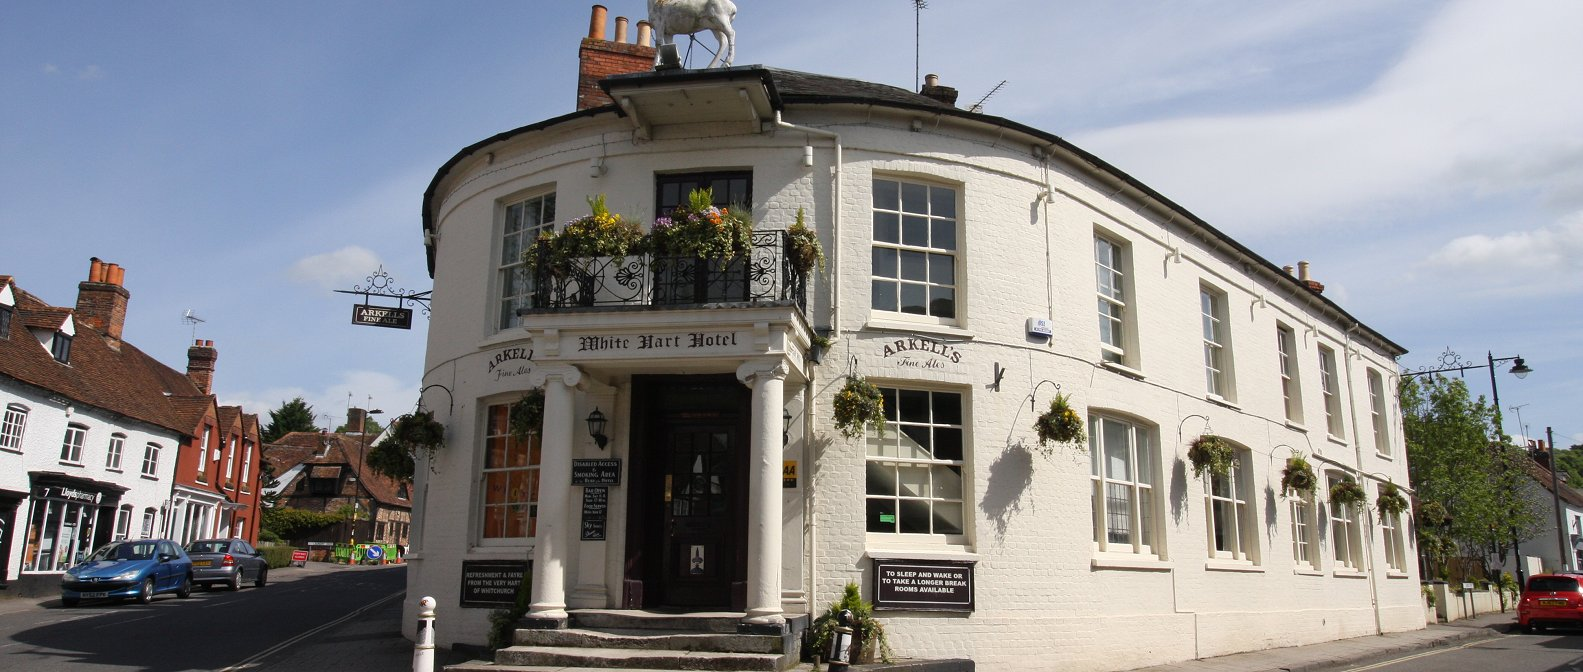 Slideshow image White Hart Hotel & Restaurant Whitchurch accommodation/bed-and-breakfast/pub food Newbury